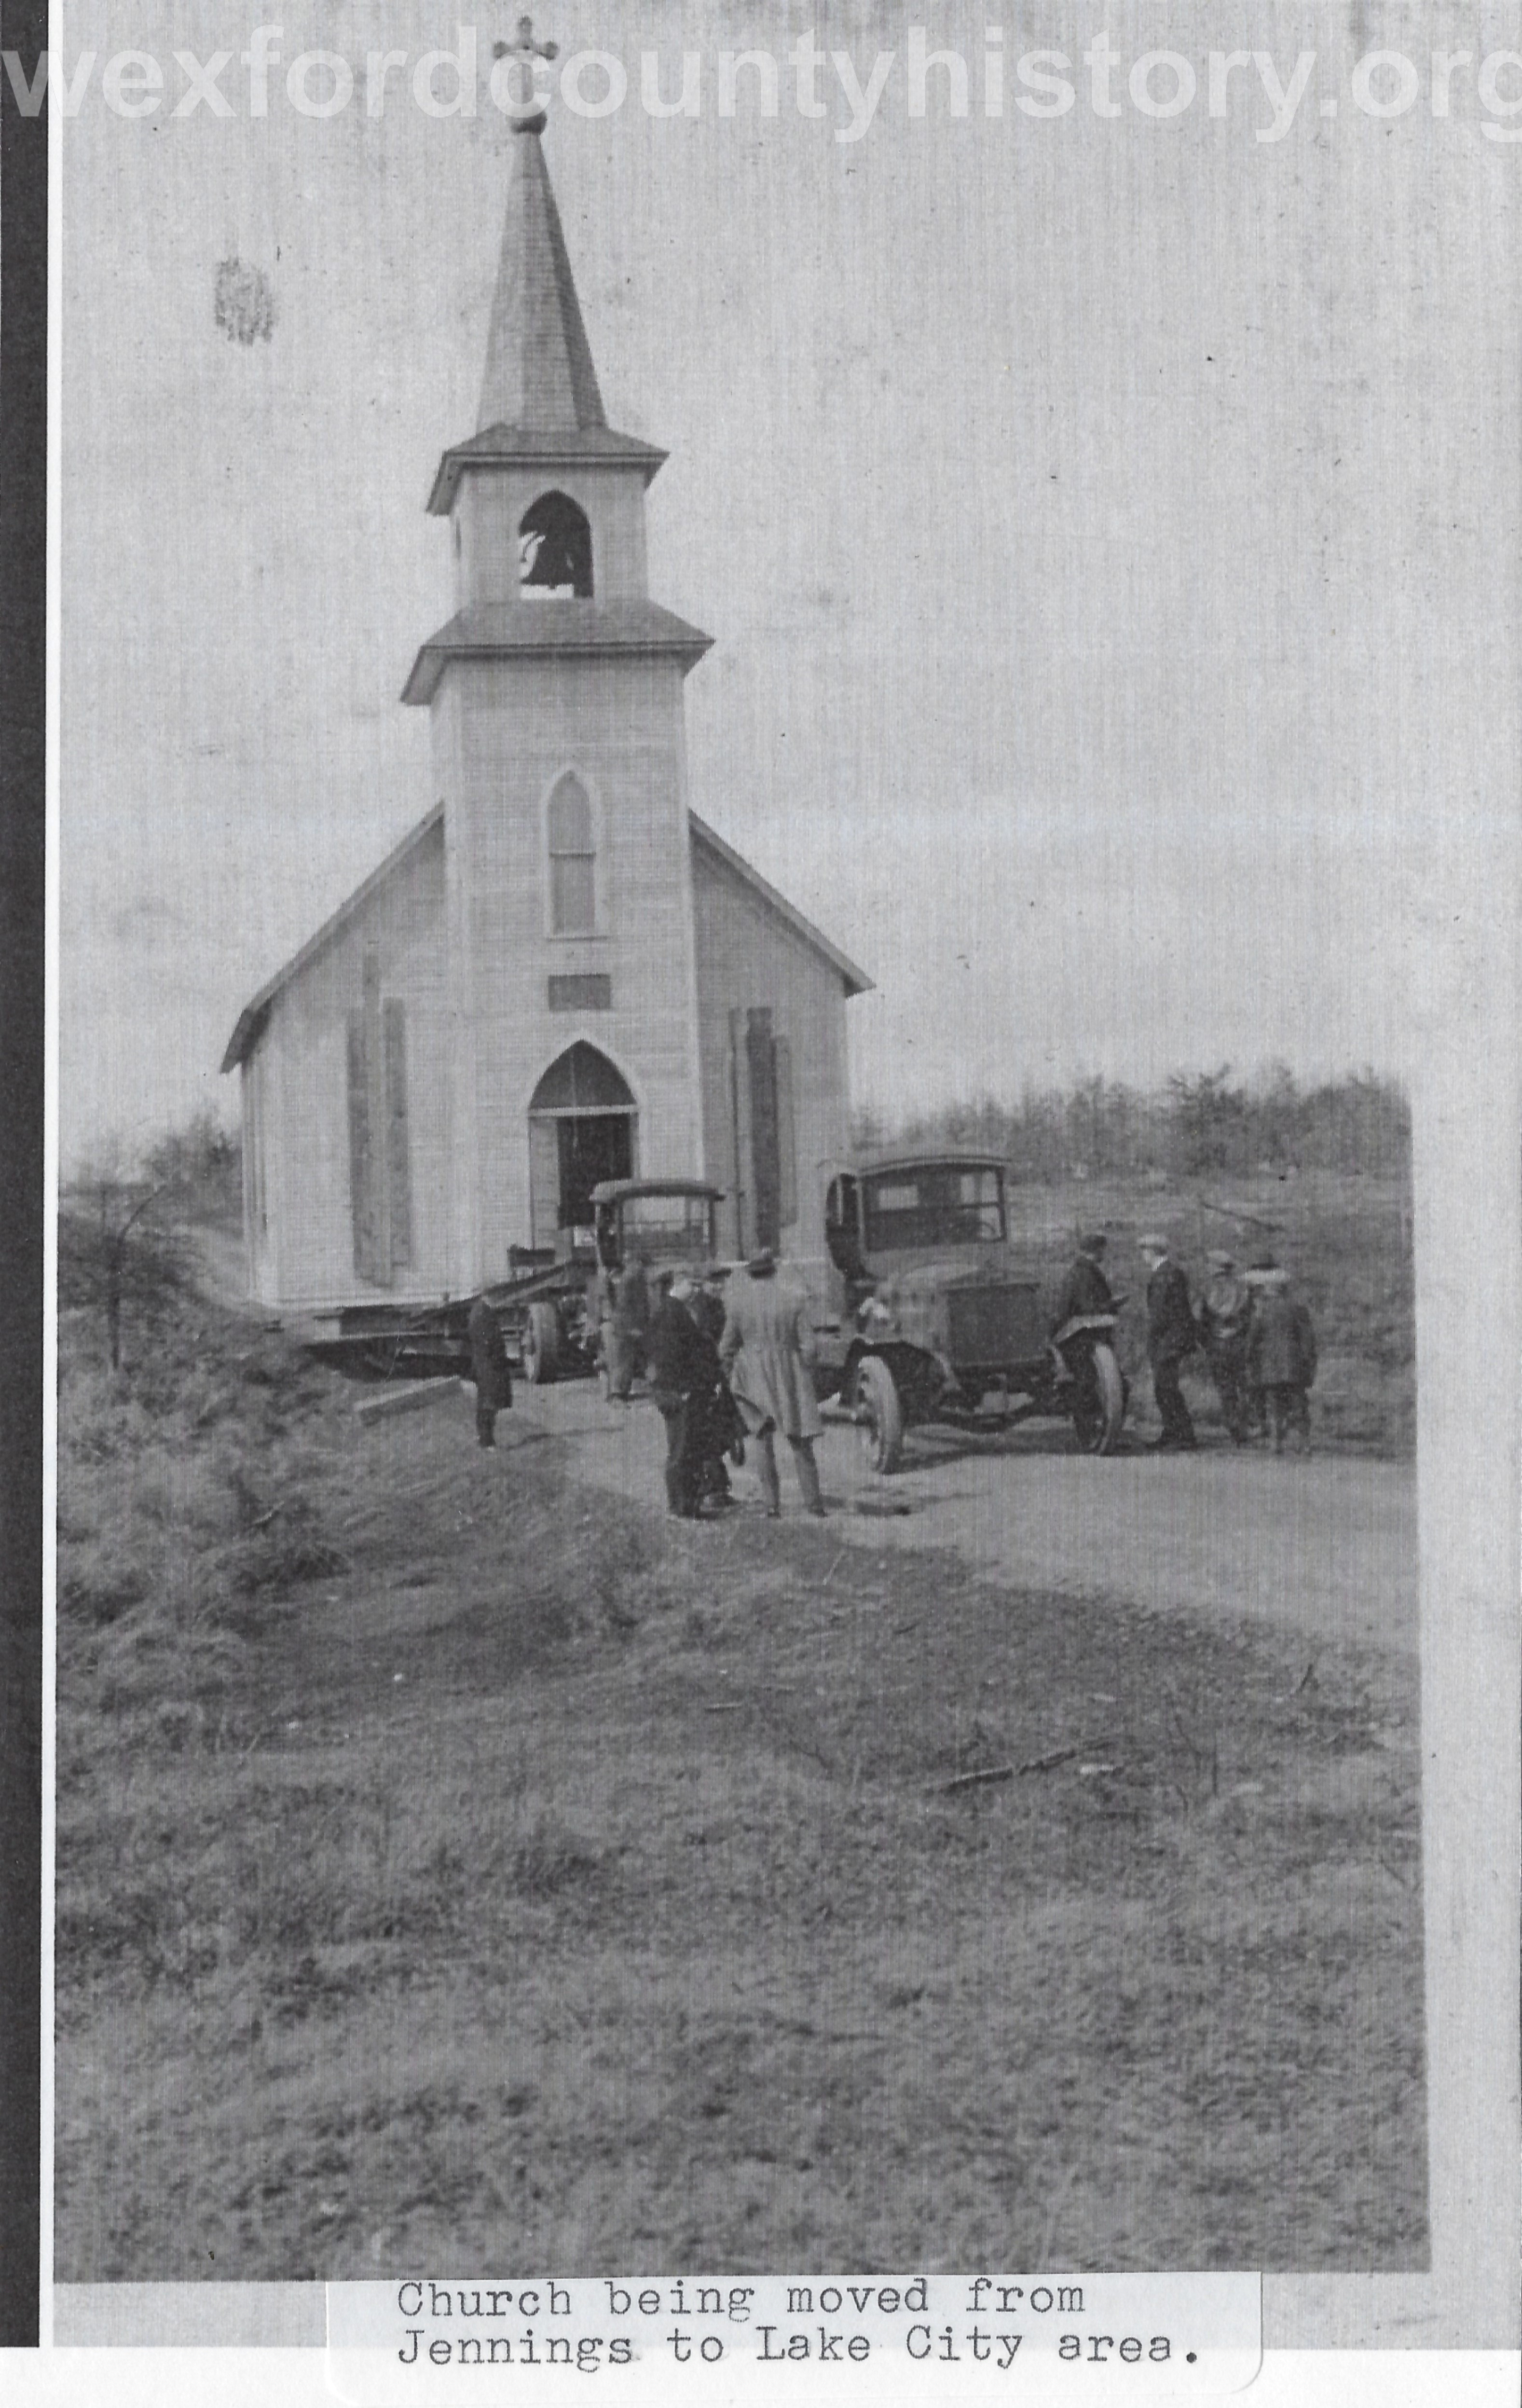 Cadillac-Business-Acme-Truck-Moving-Church-21